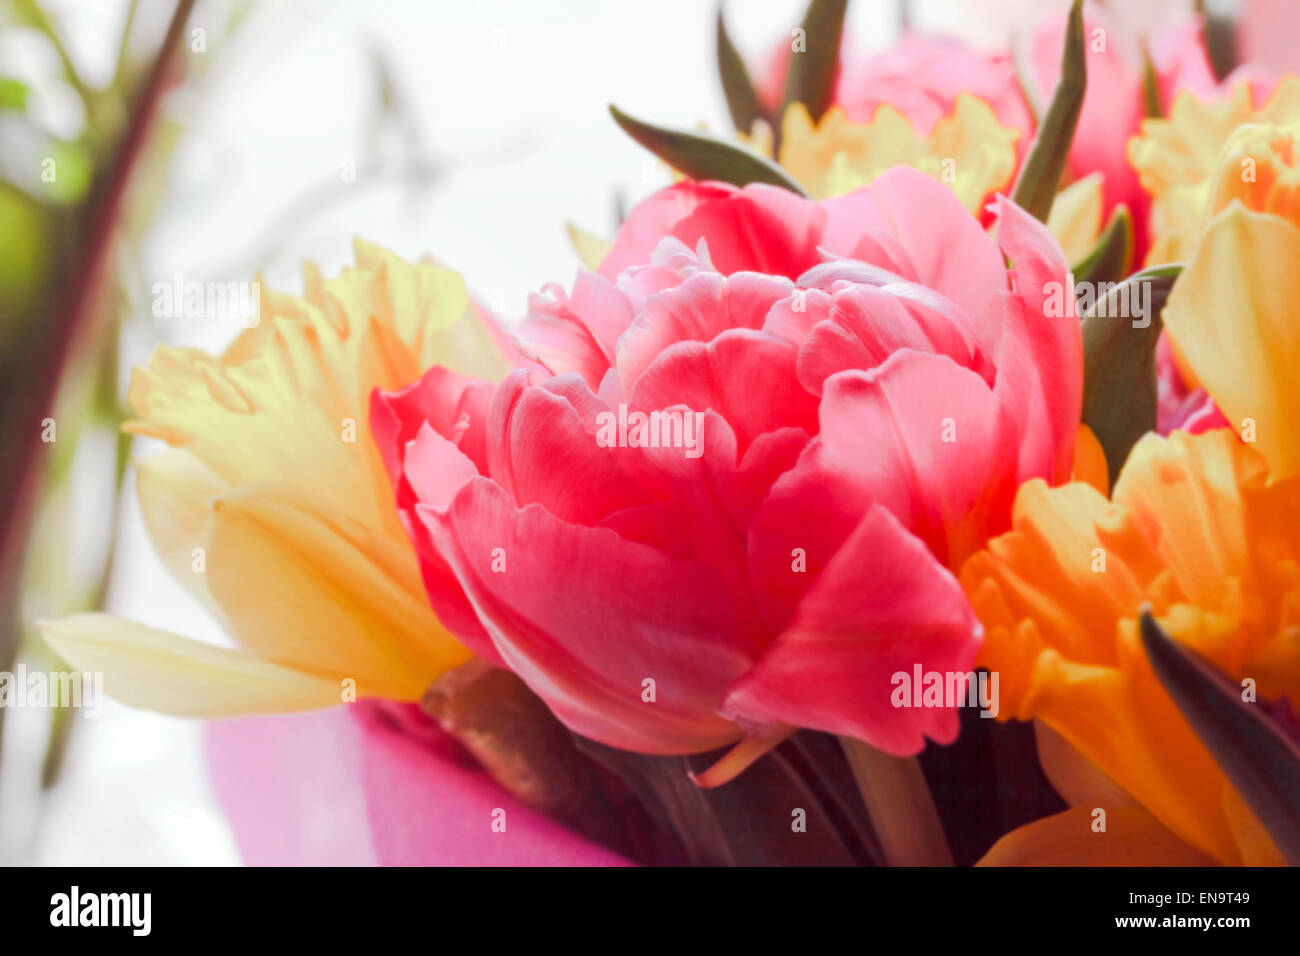 Beauty bouquet large colorful spring tulips in sunlight - Stock Image